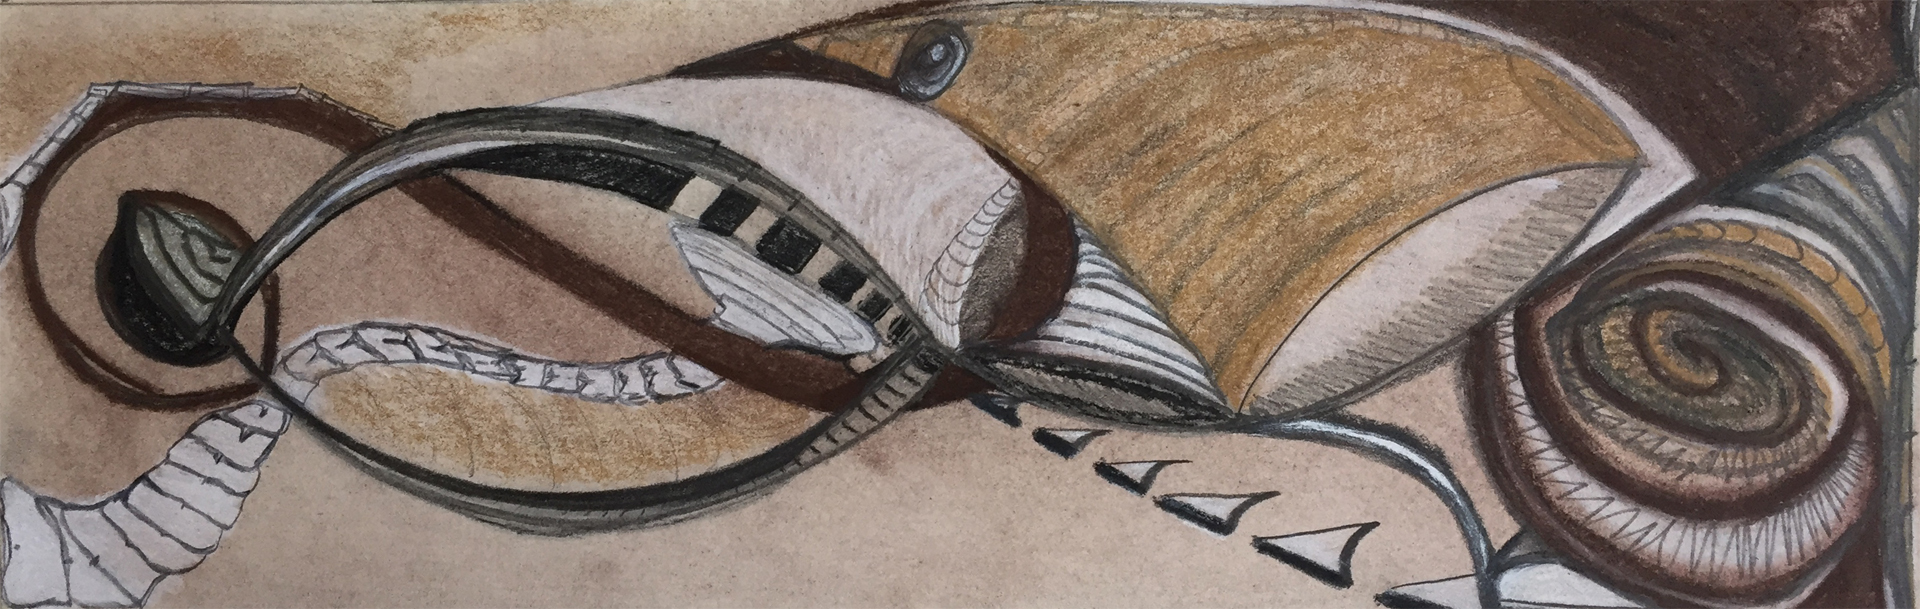 Hatch 1 (Forest), Pencil, Charcoal, Pastel, 4 x 12 in., 2015